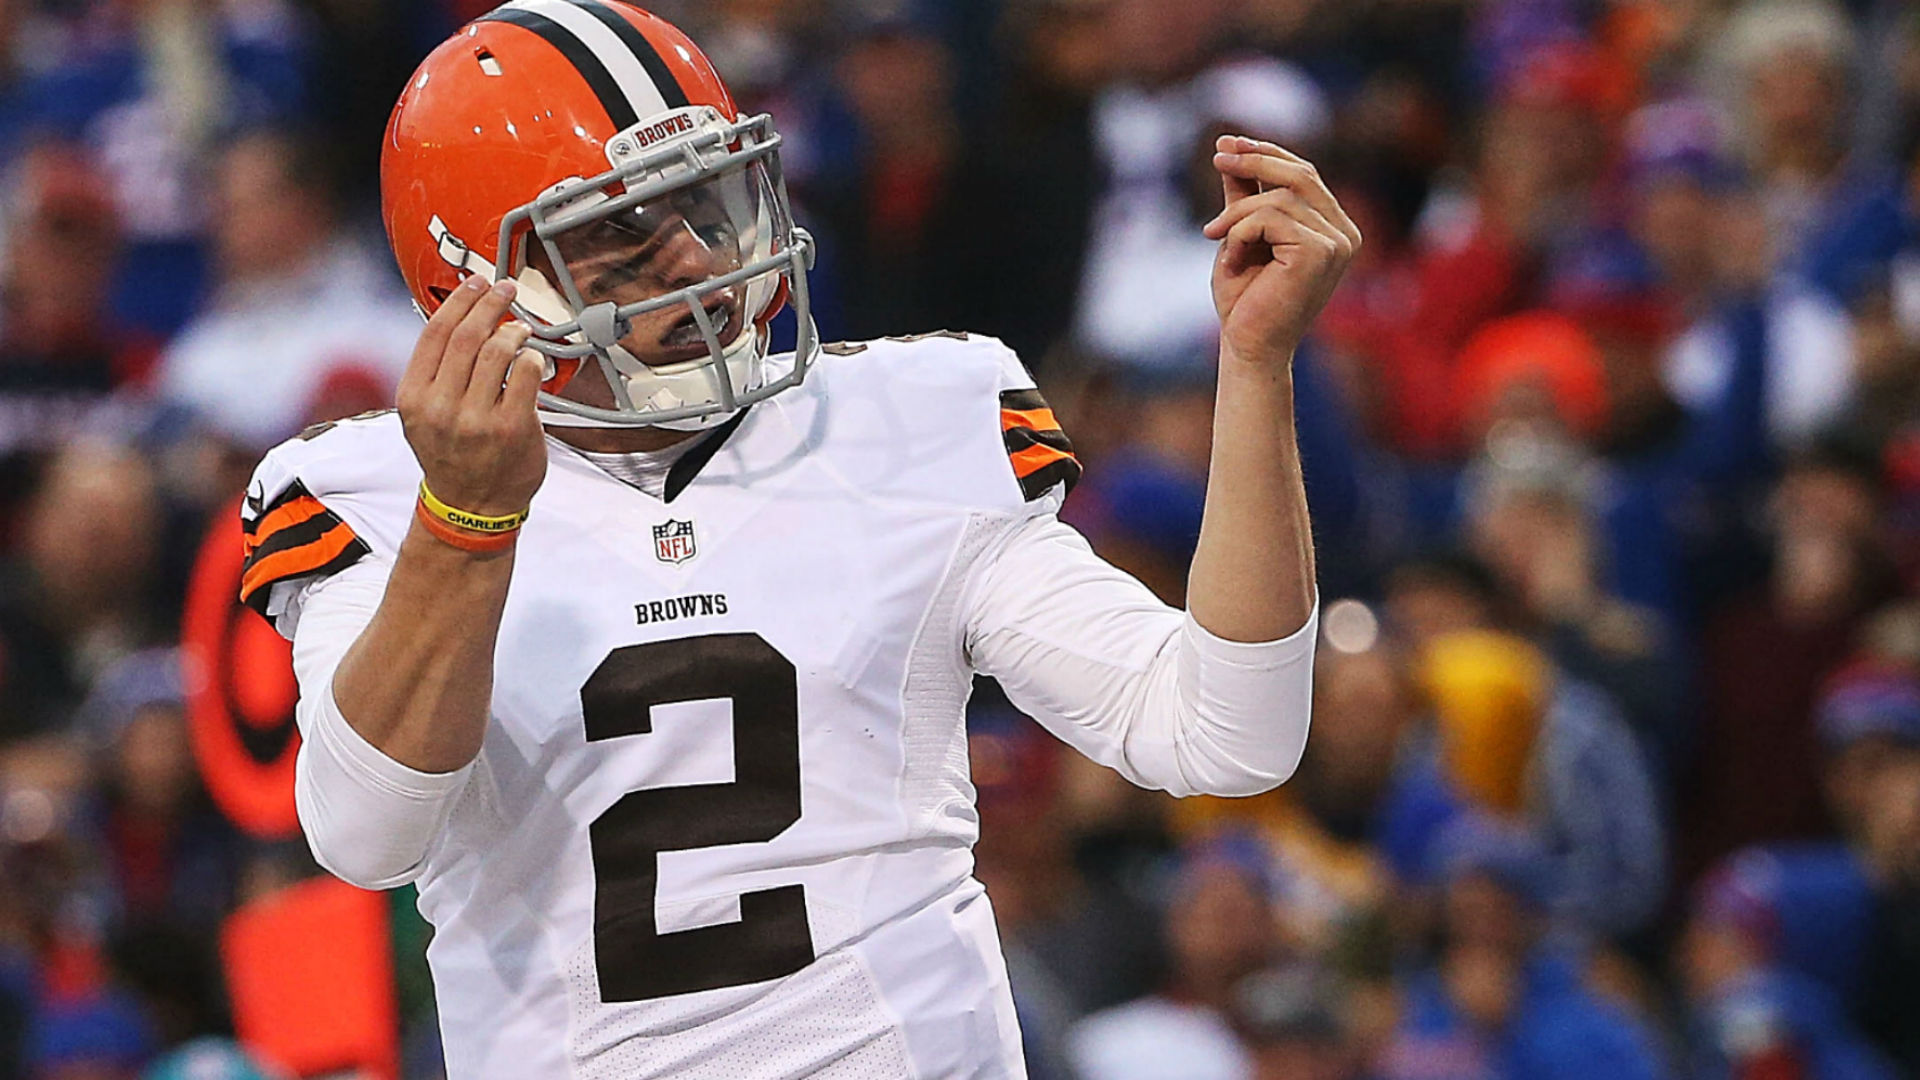 Manziel-johnny-121114-usnews-getty-ftr_1lbh5jr4r37f11is4jygvmcdvf